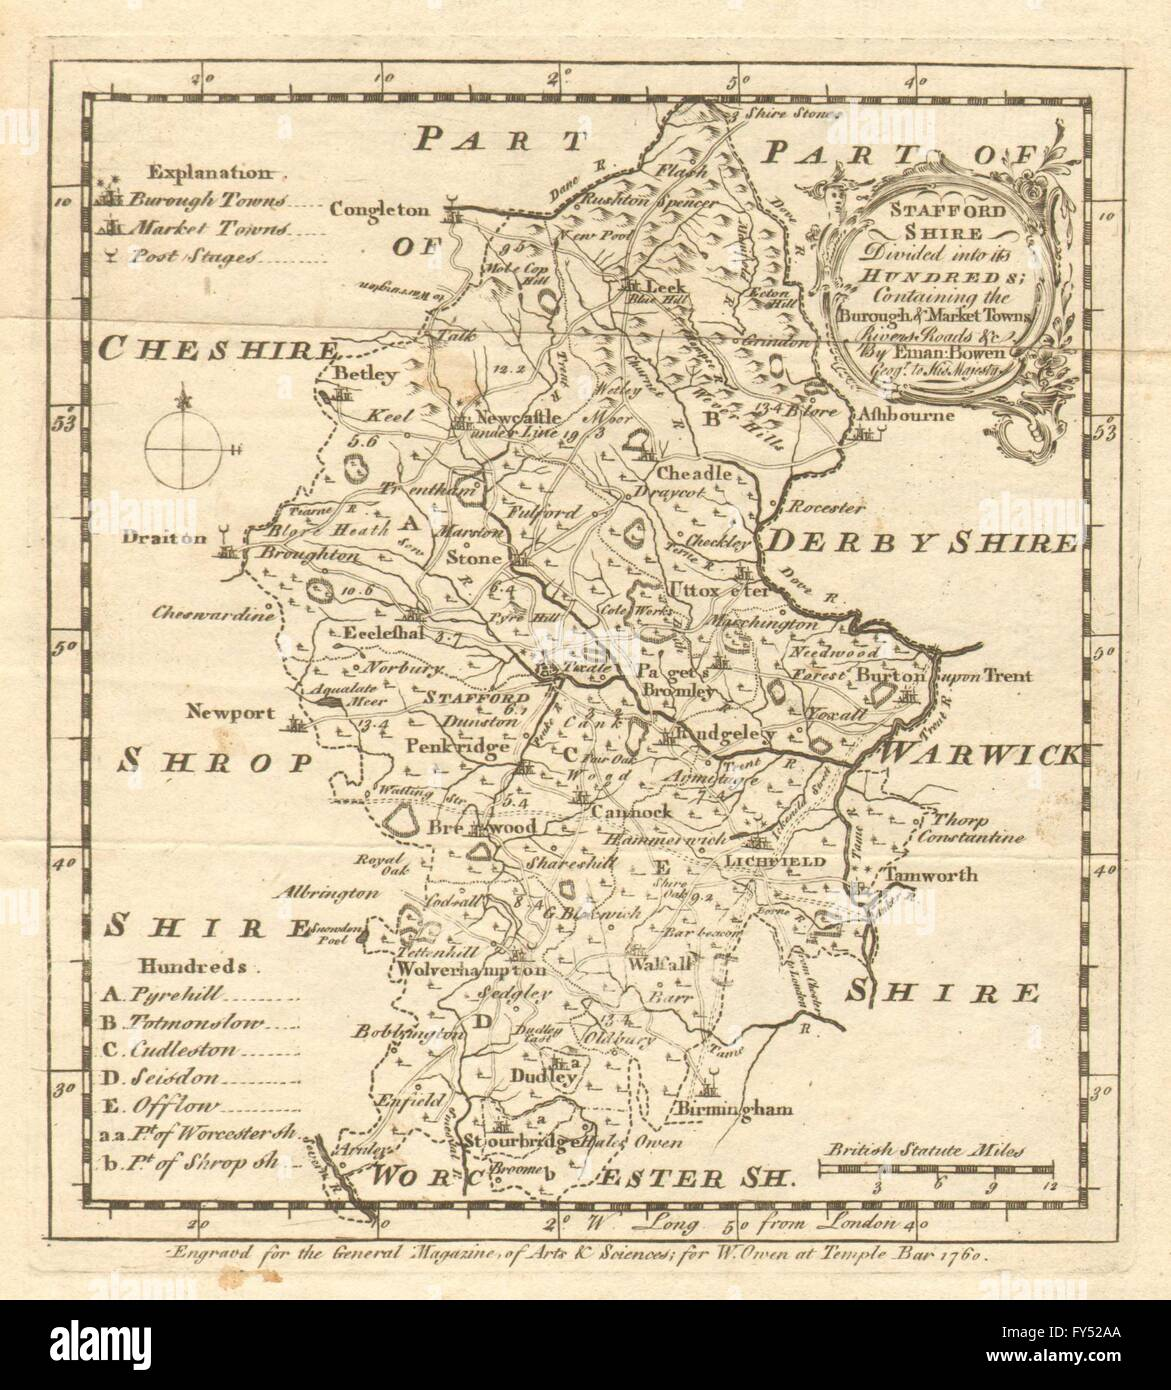 Antique map of Staffordshire by Emmanuel Bowen, 1760 - Stock Image